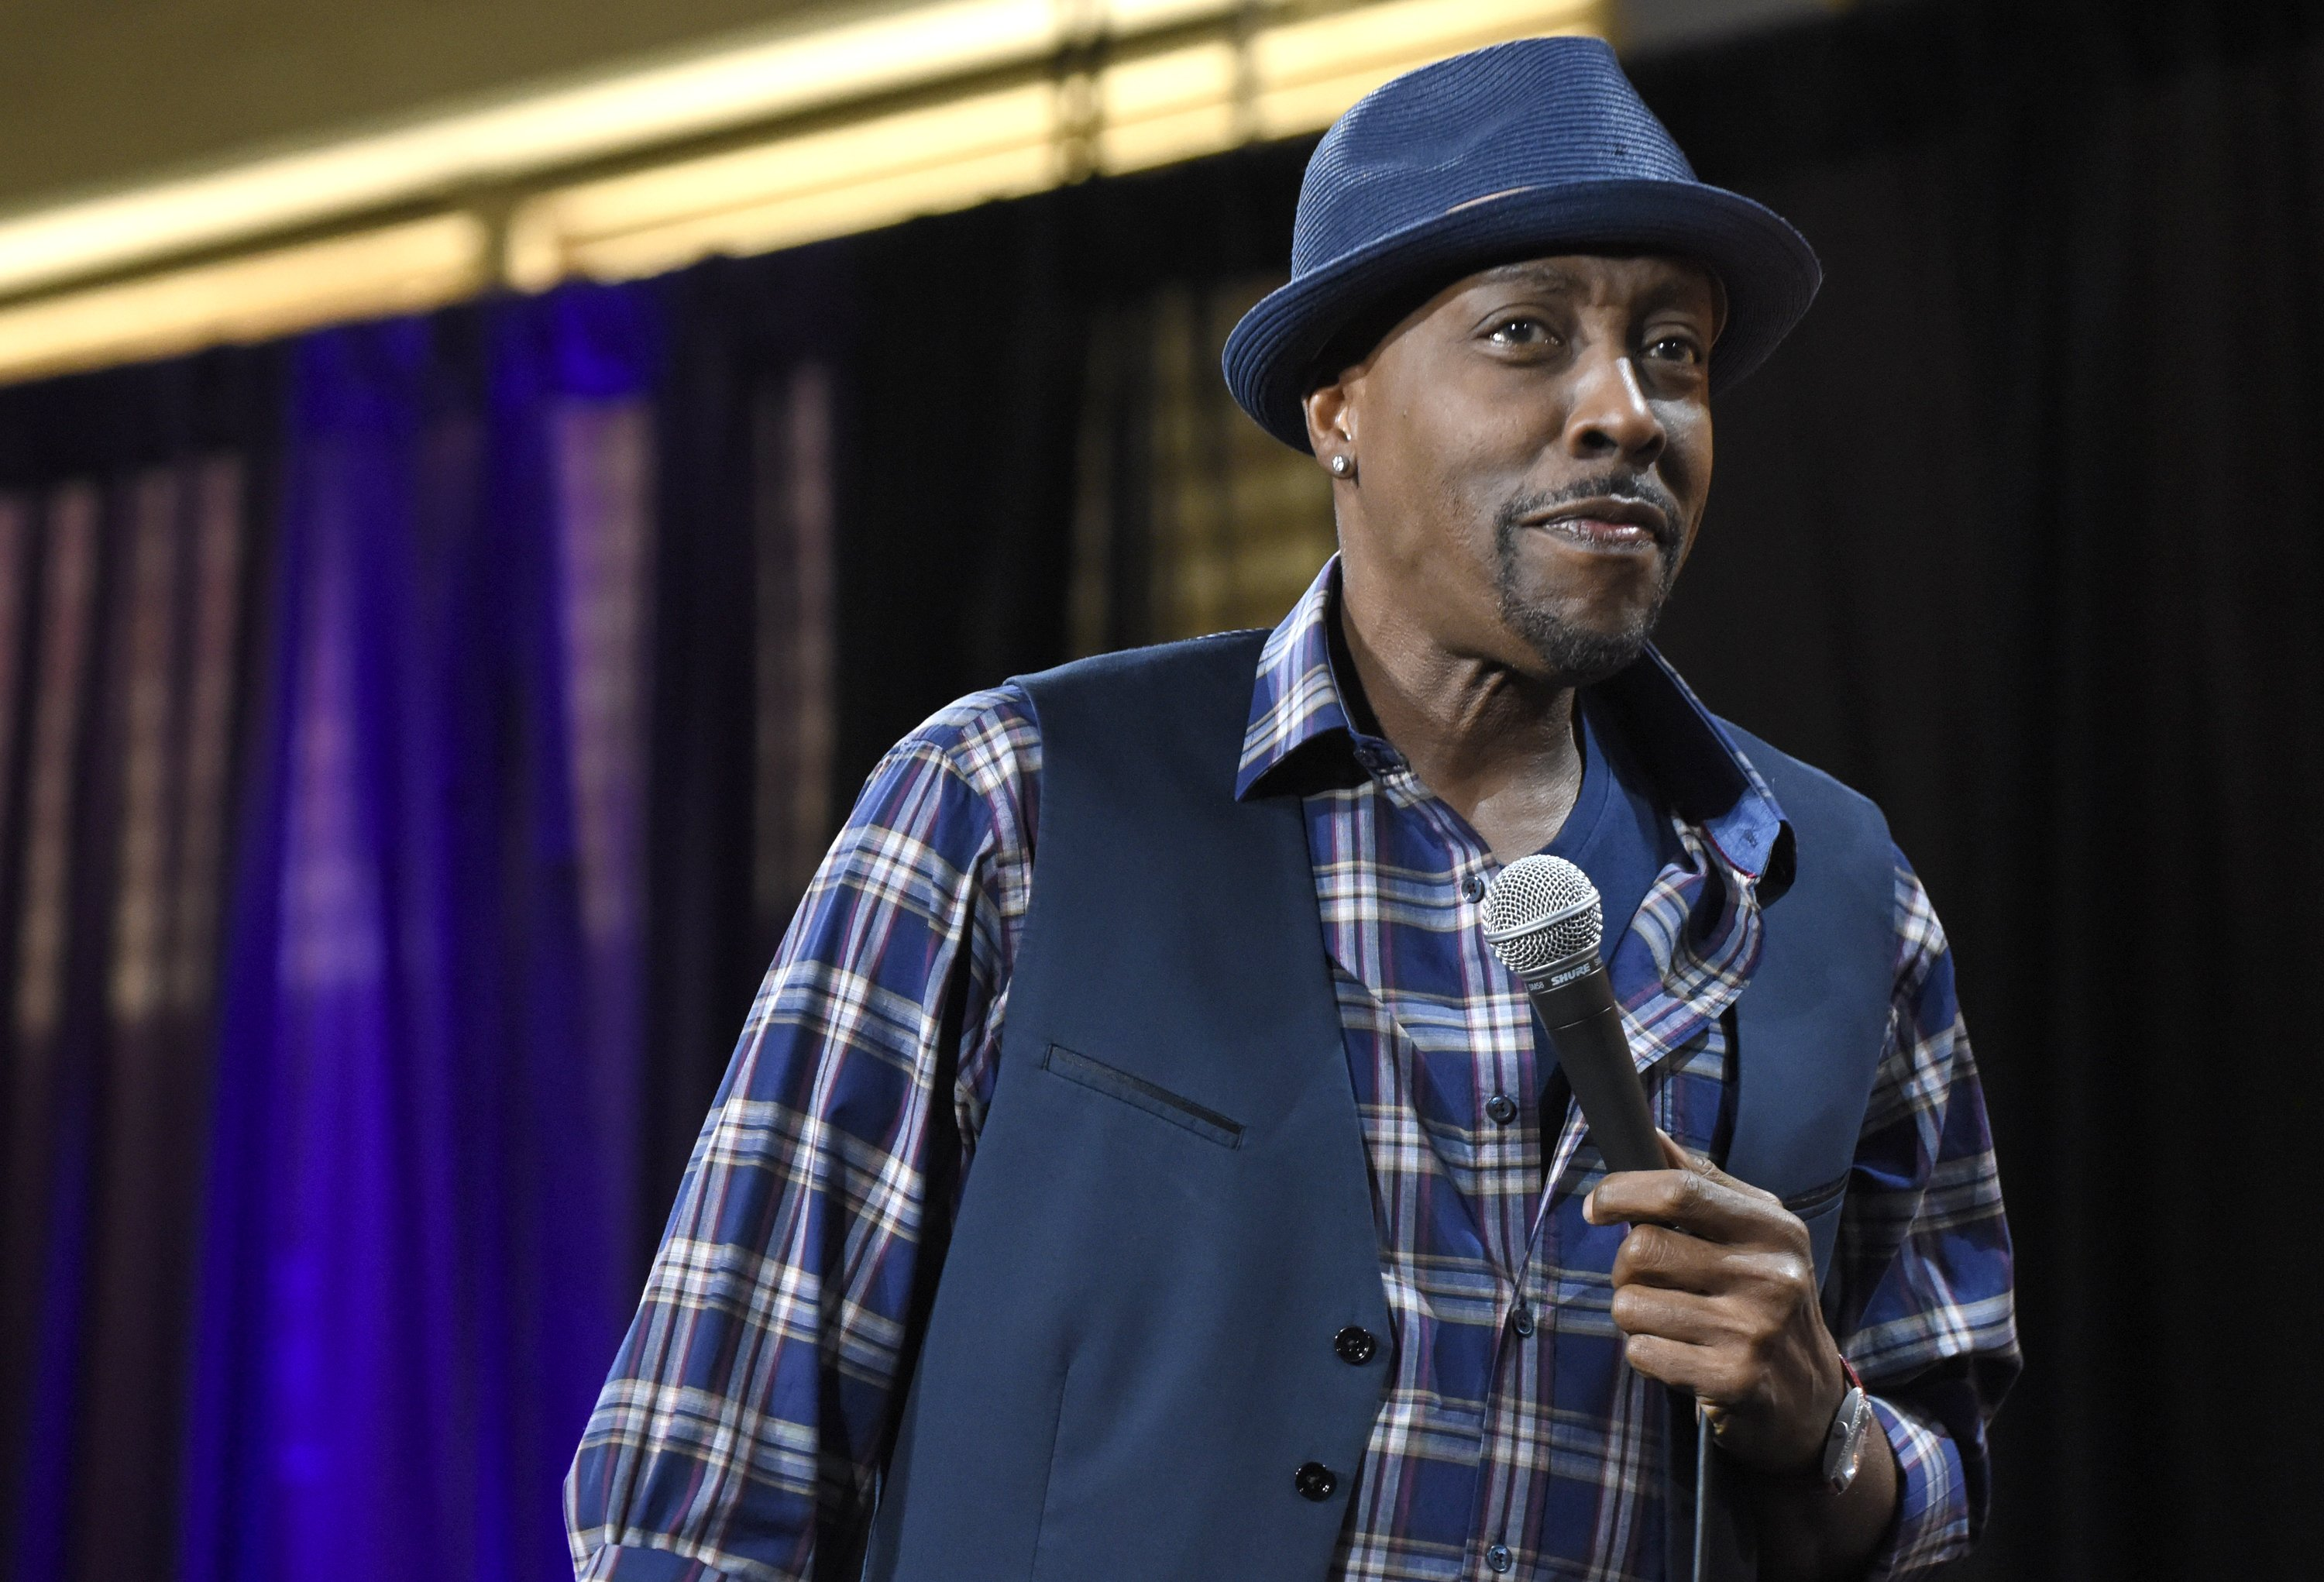 Arsenio Hall performs during KAABOO Del Mar at the Del Mar Fairgrounds on September 15, 2017 | Photo: Getty Images